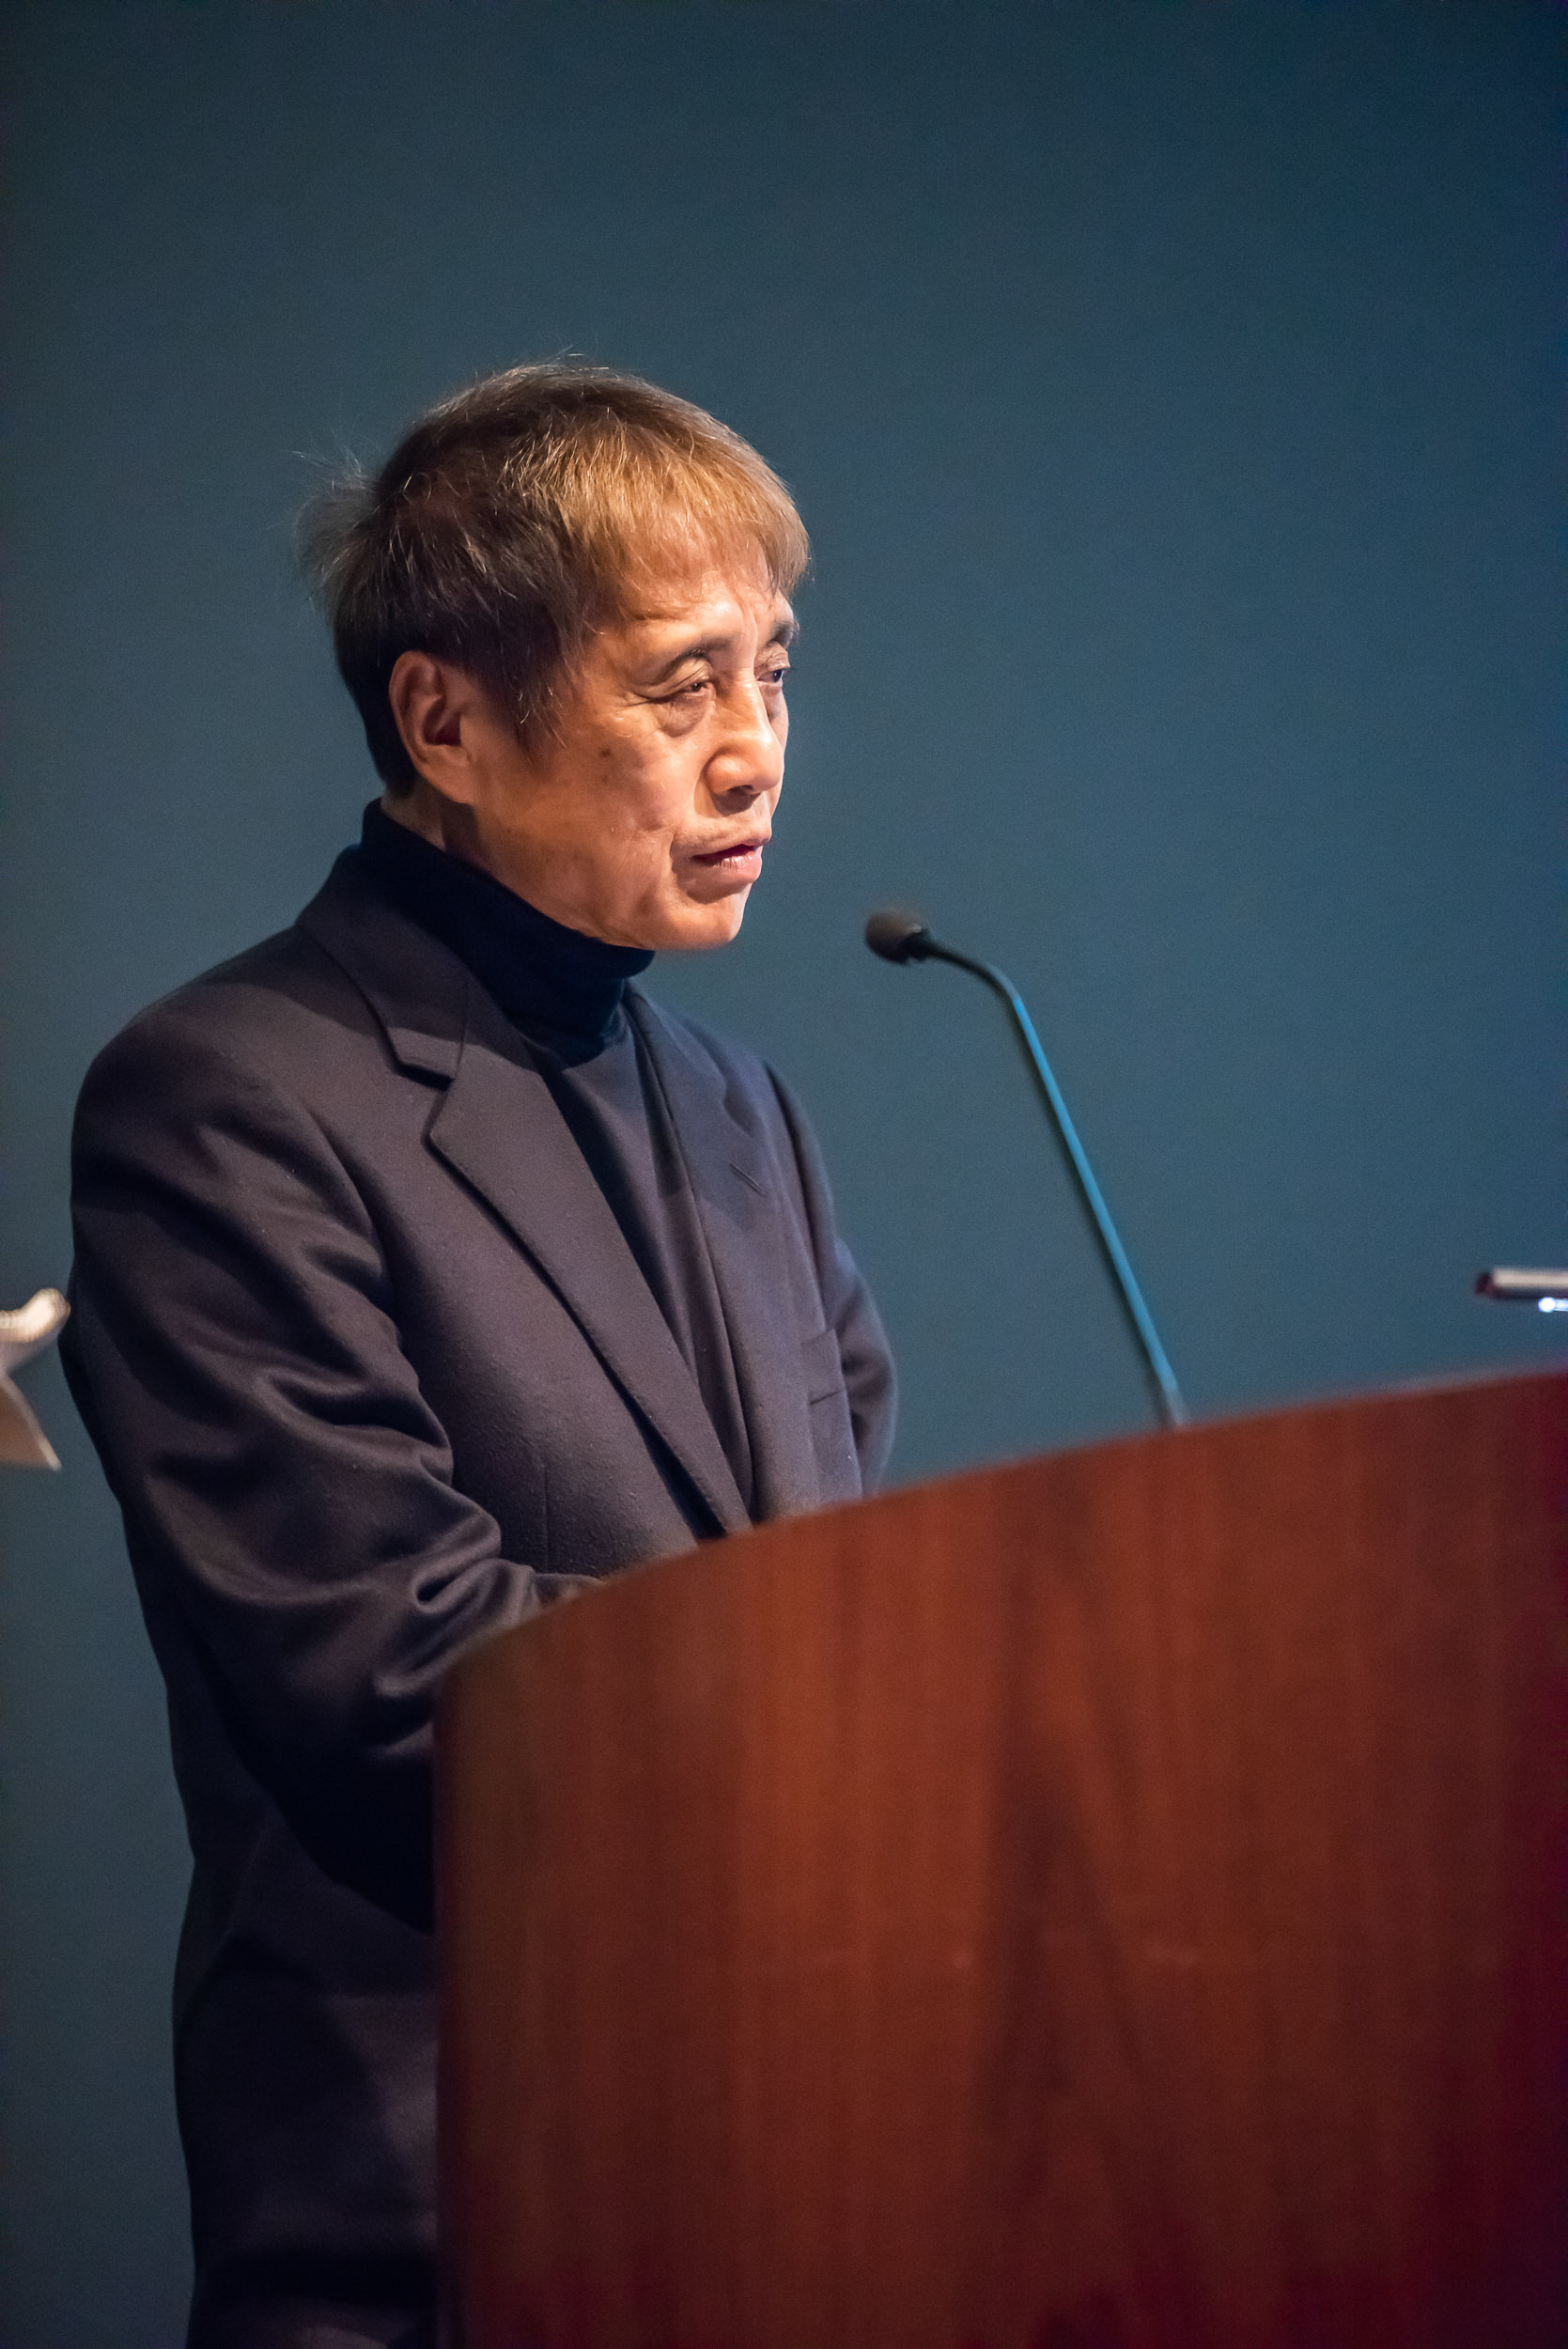 181011 - Tadao Ando Lecture - mark campbell photography-20_Resized.jpg